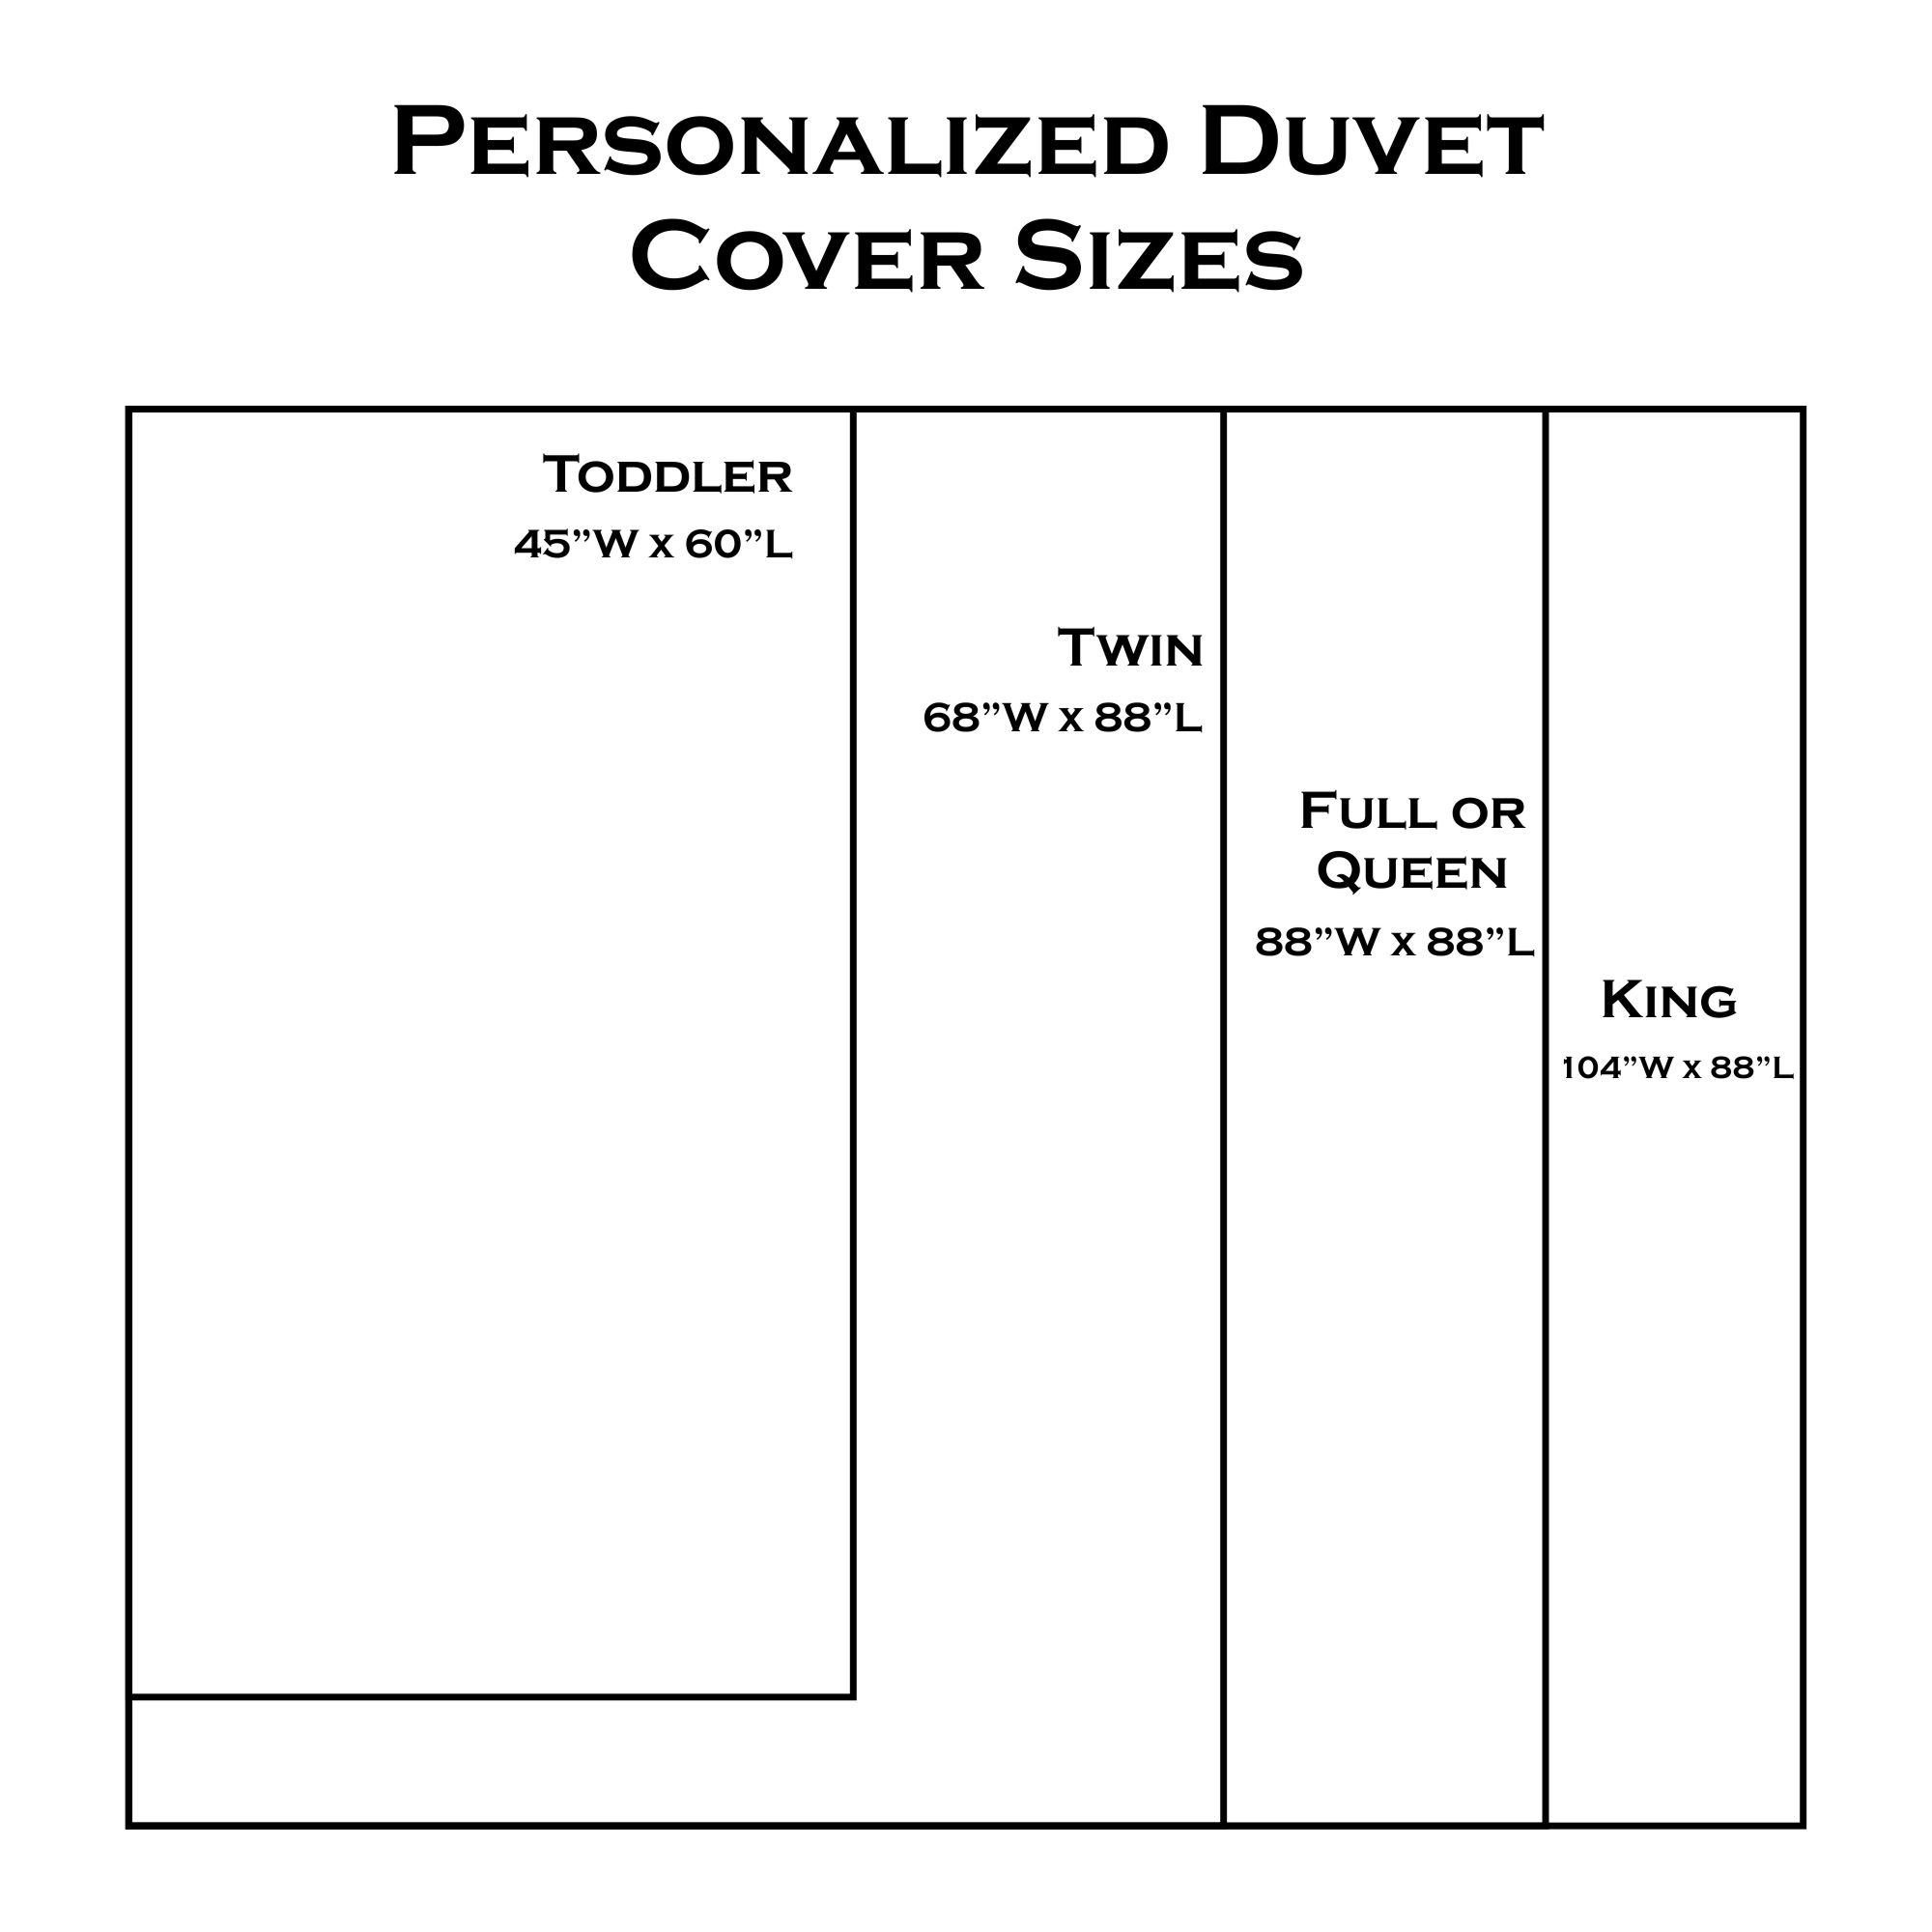 Personalized Duvet Cover - YouCustomizeIt